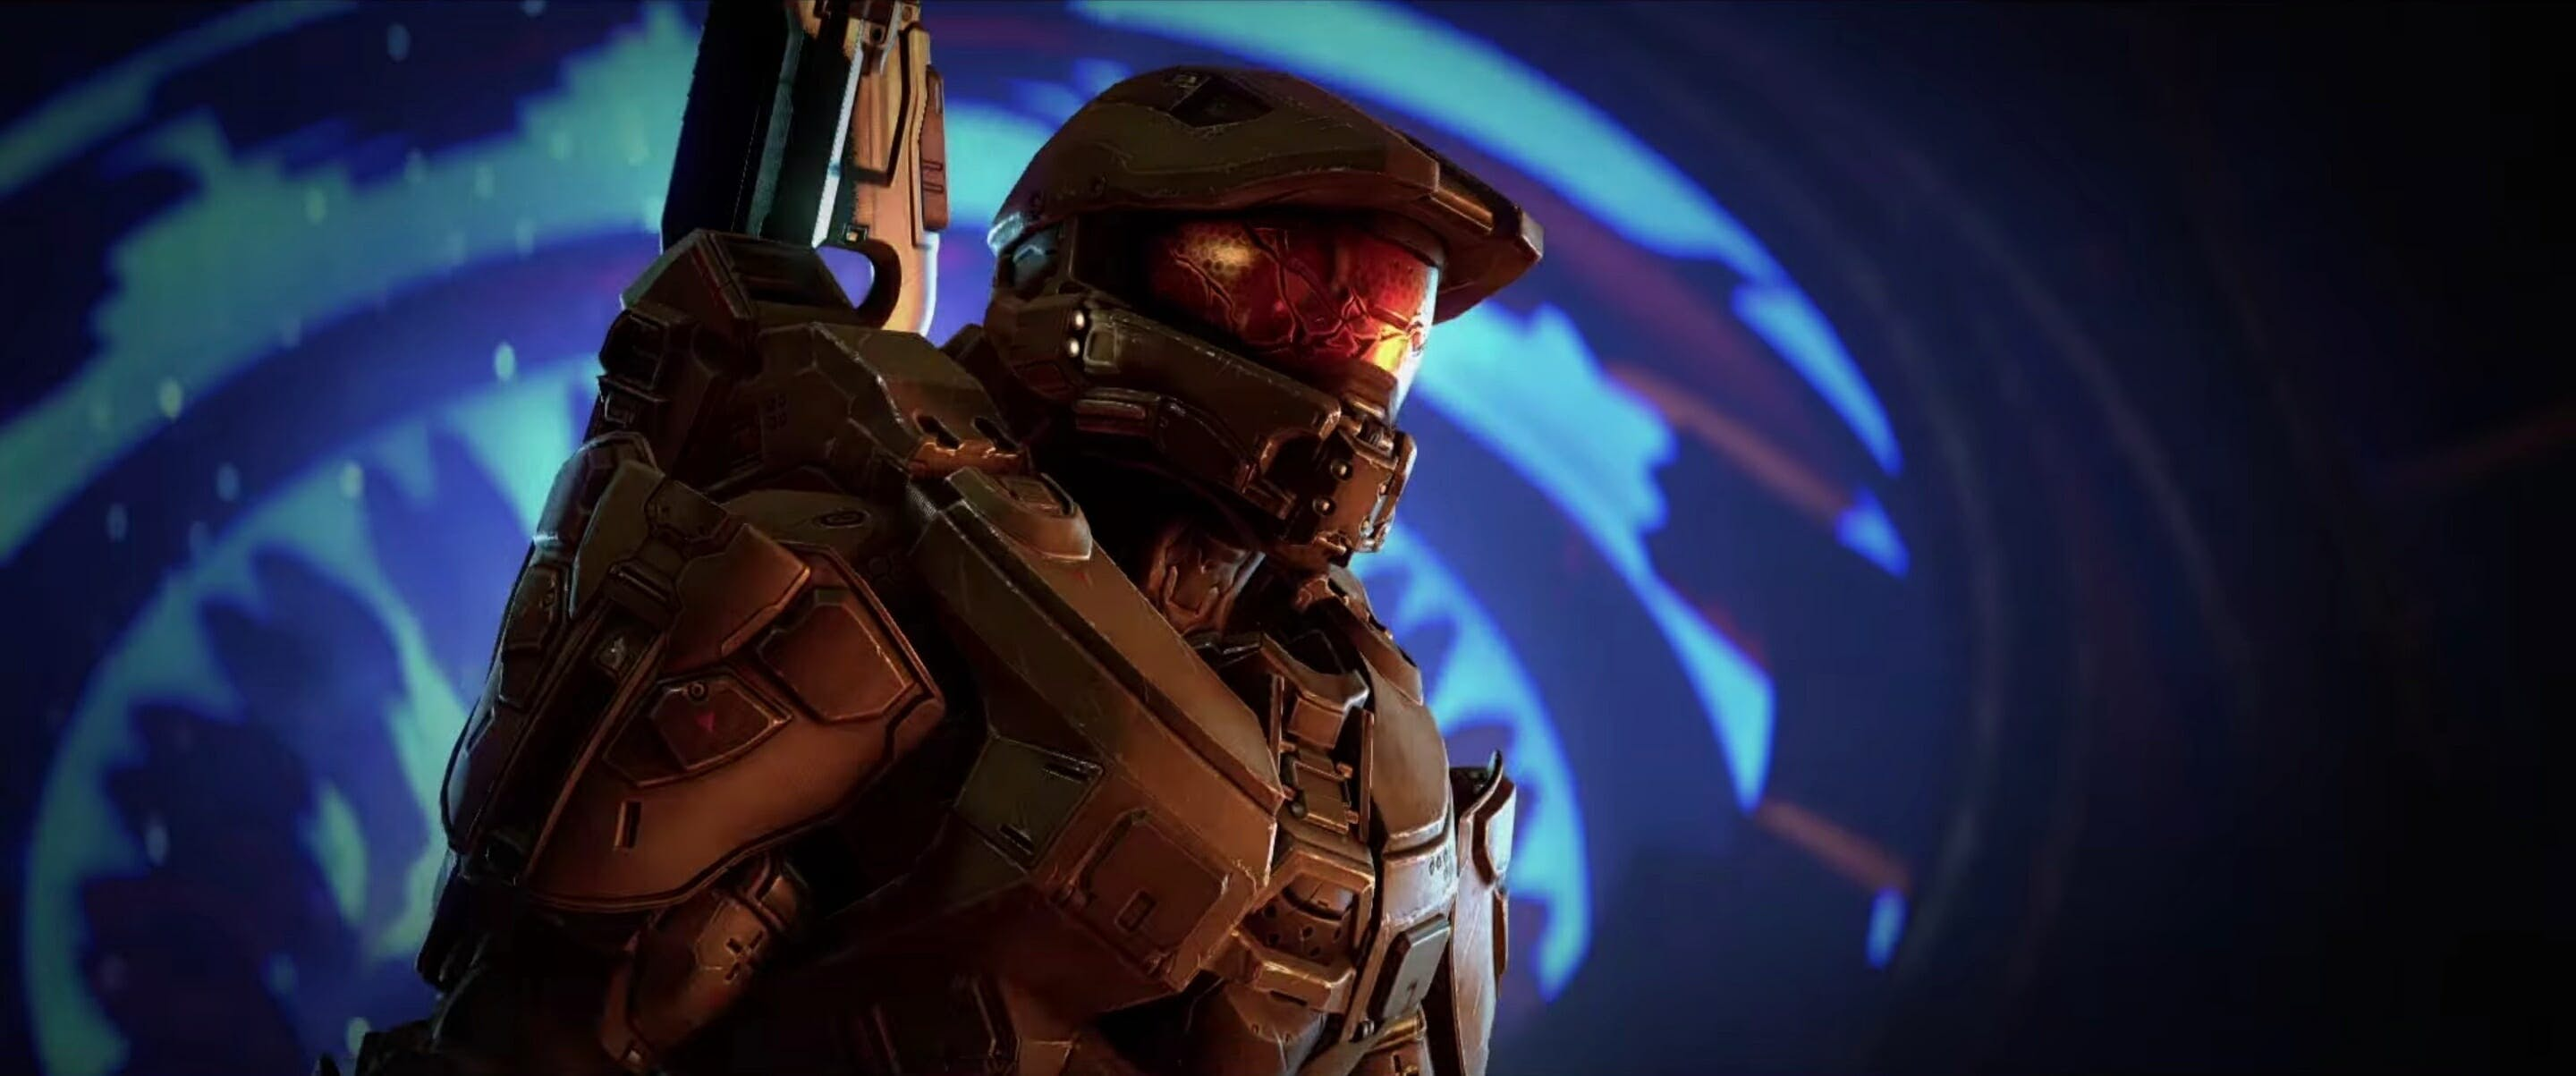 next_game_of_thrones_halo